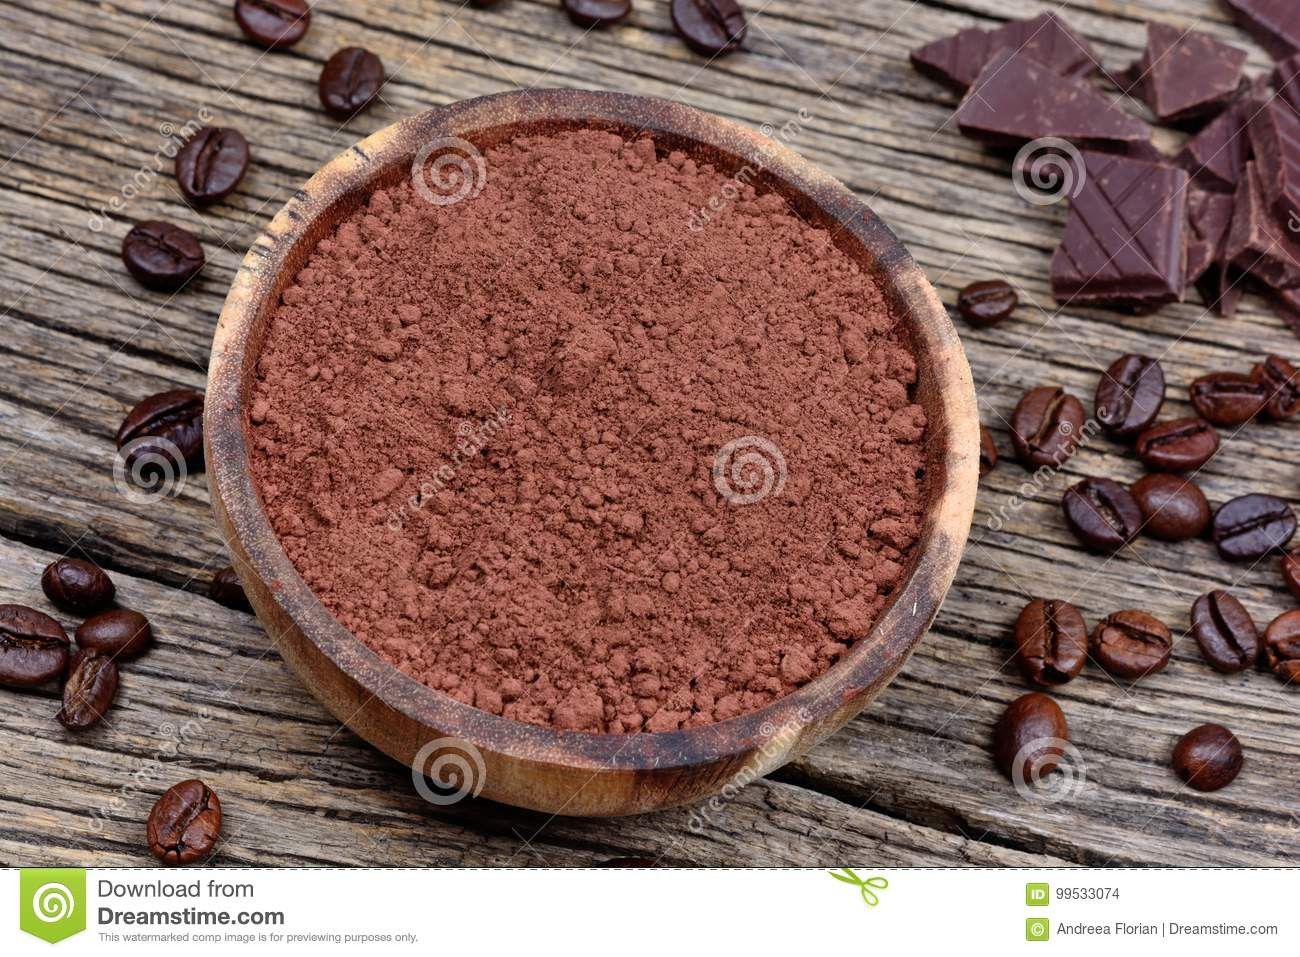 Bowl with cacao powder and coffee beans on rustic table